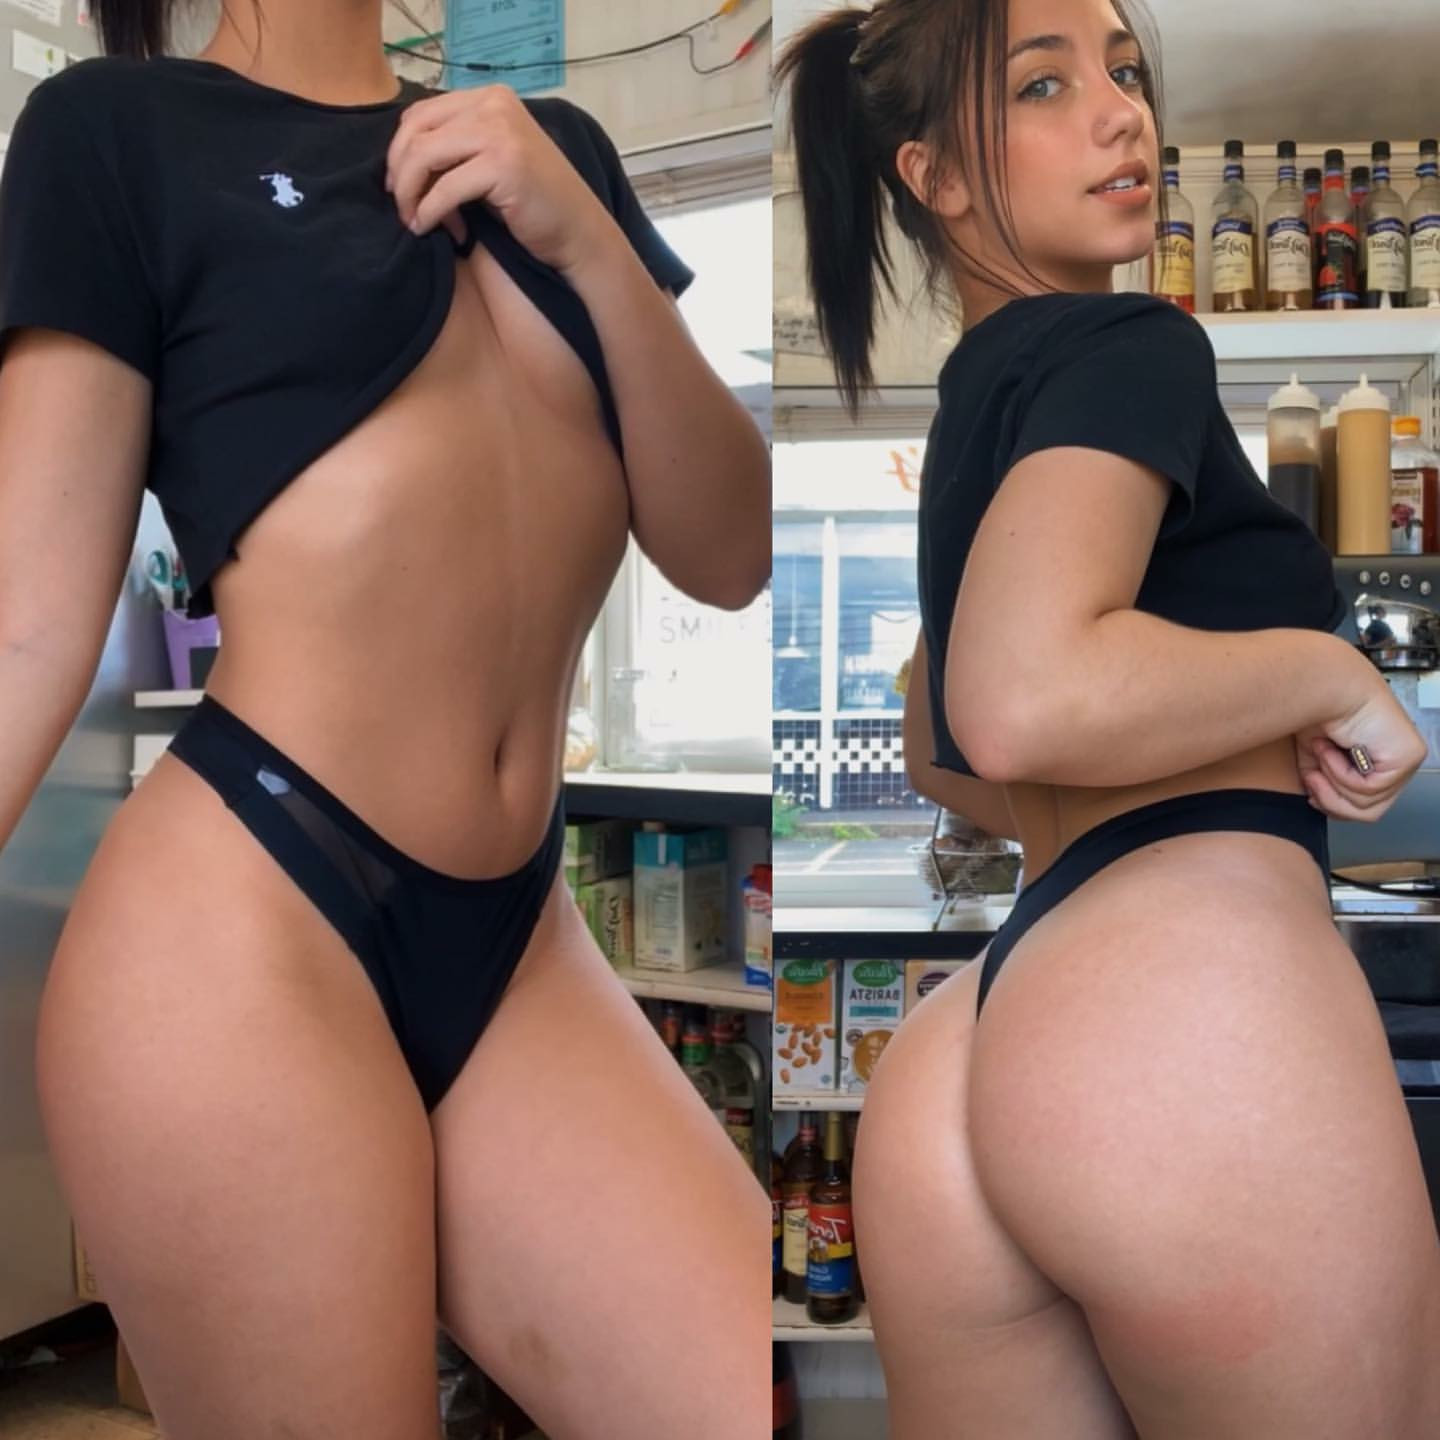 baristaalix Onlyfans Leaked Nude Photos fappenings.com 43